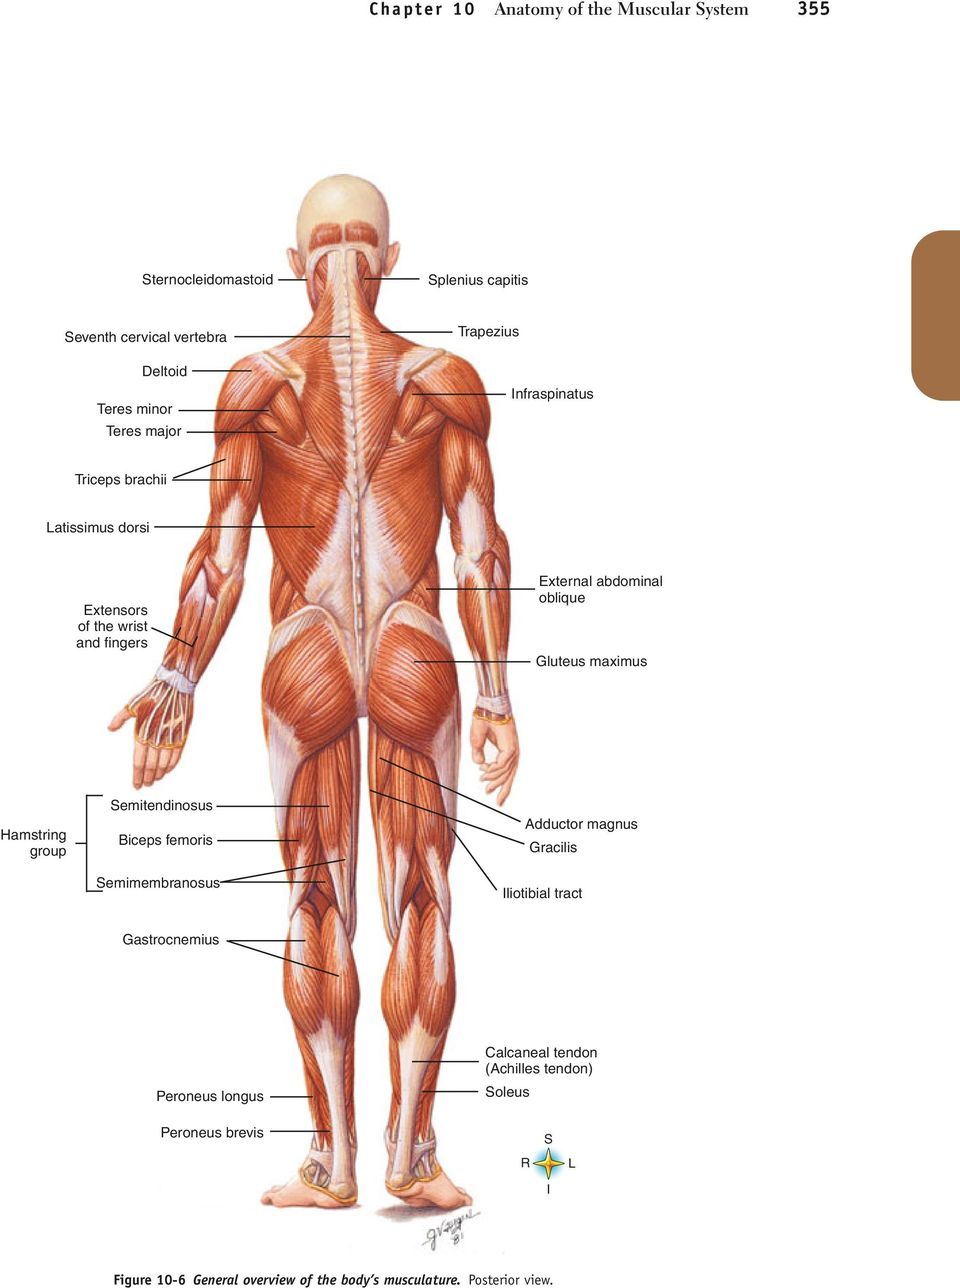 Anatomy of the Muscular System - PDF